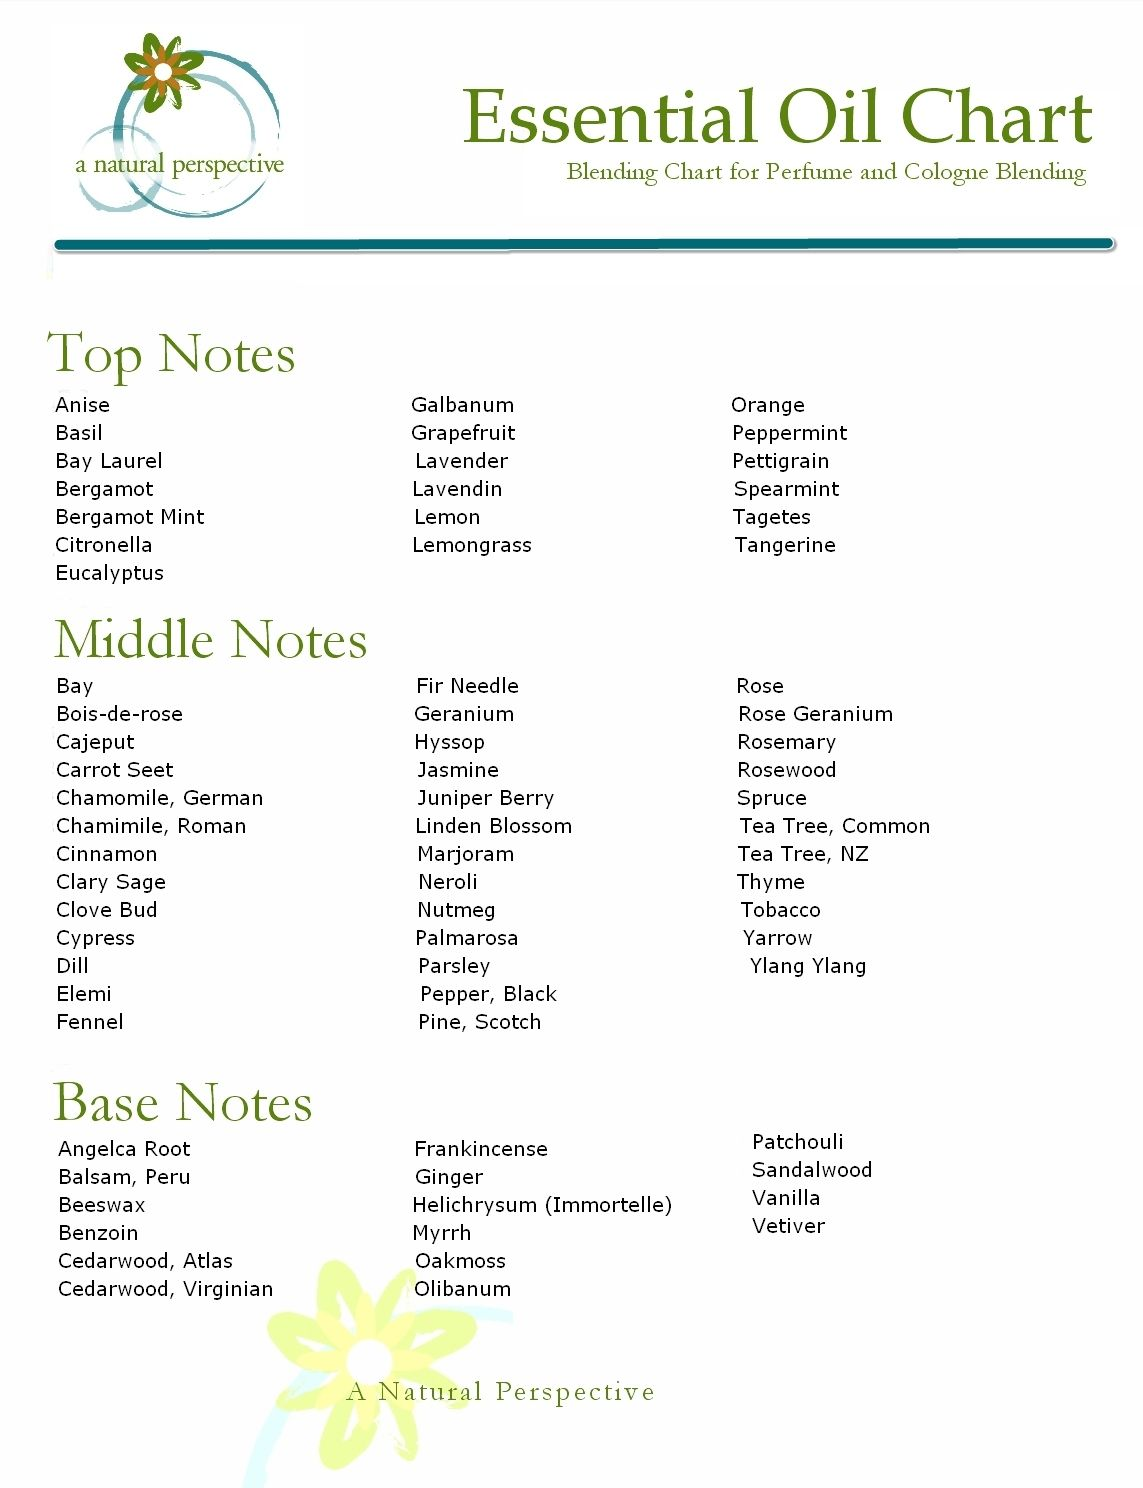 A Natural Perspective Essential Oil Blending Chart